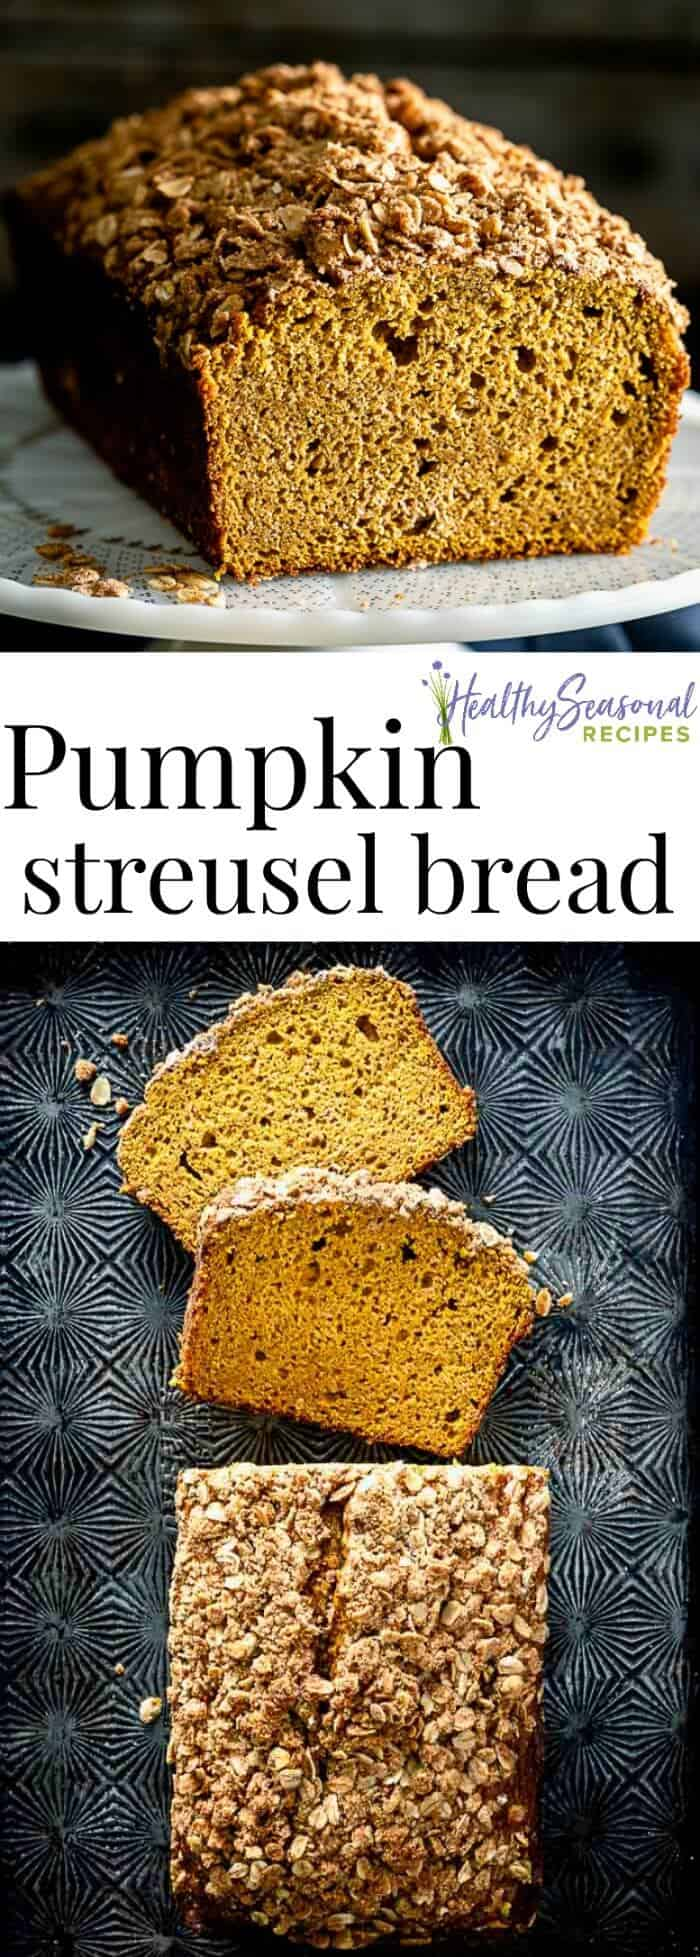 Pumpkin Streusel Bread with cinnamon, nutmeg and cream sherry (or dark rum). The oat, butter and brown sugar crumb topping and impressive rise makes this pumpkin loaf a great homemade gift for the holidays. #pumpkinbread #pumpkin #pumpkinrecipes #quickbread #homemadegift #holidaybaking #baking #snack #breakfast #fallbaking